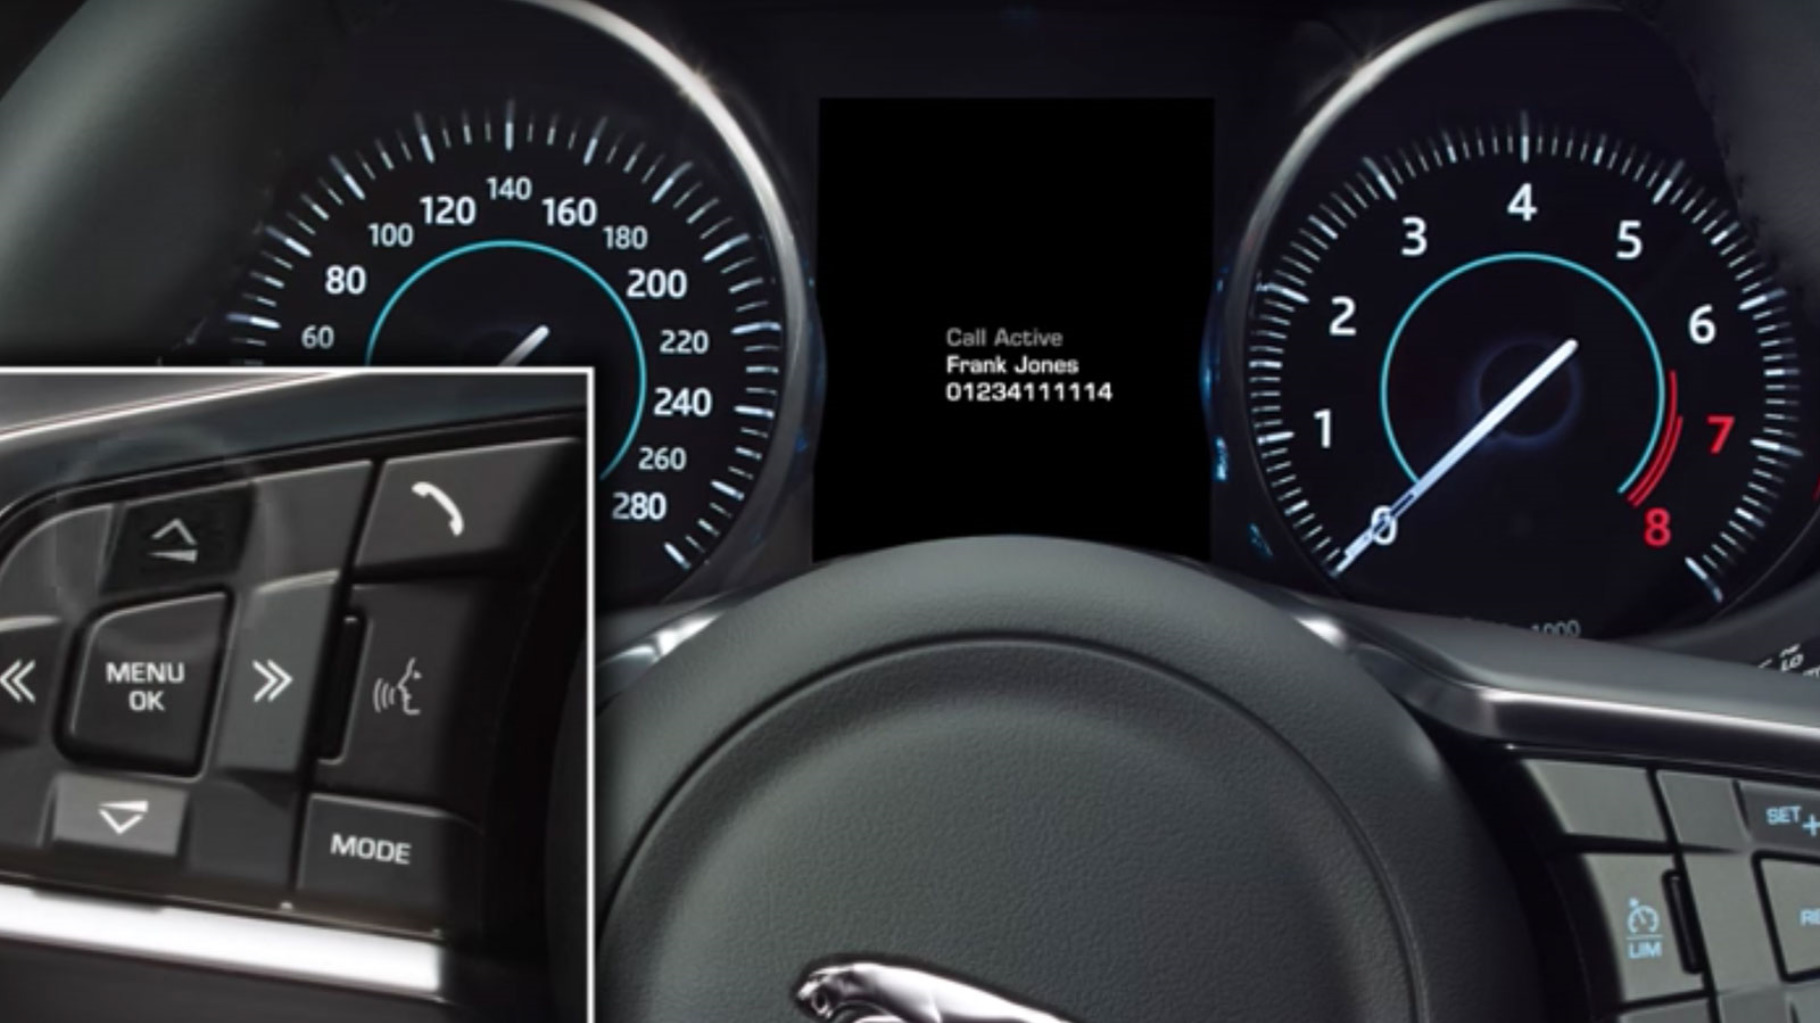 Jaguar F-Pace's InControl Pro: Steering Wheel Controls information video.